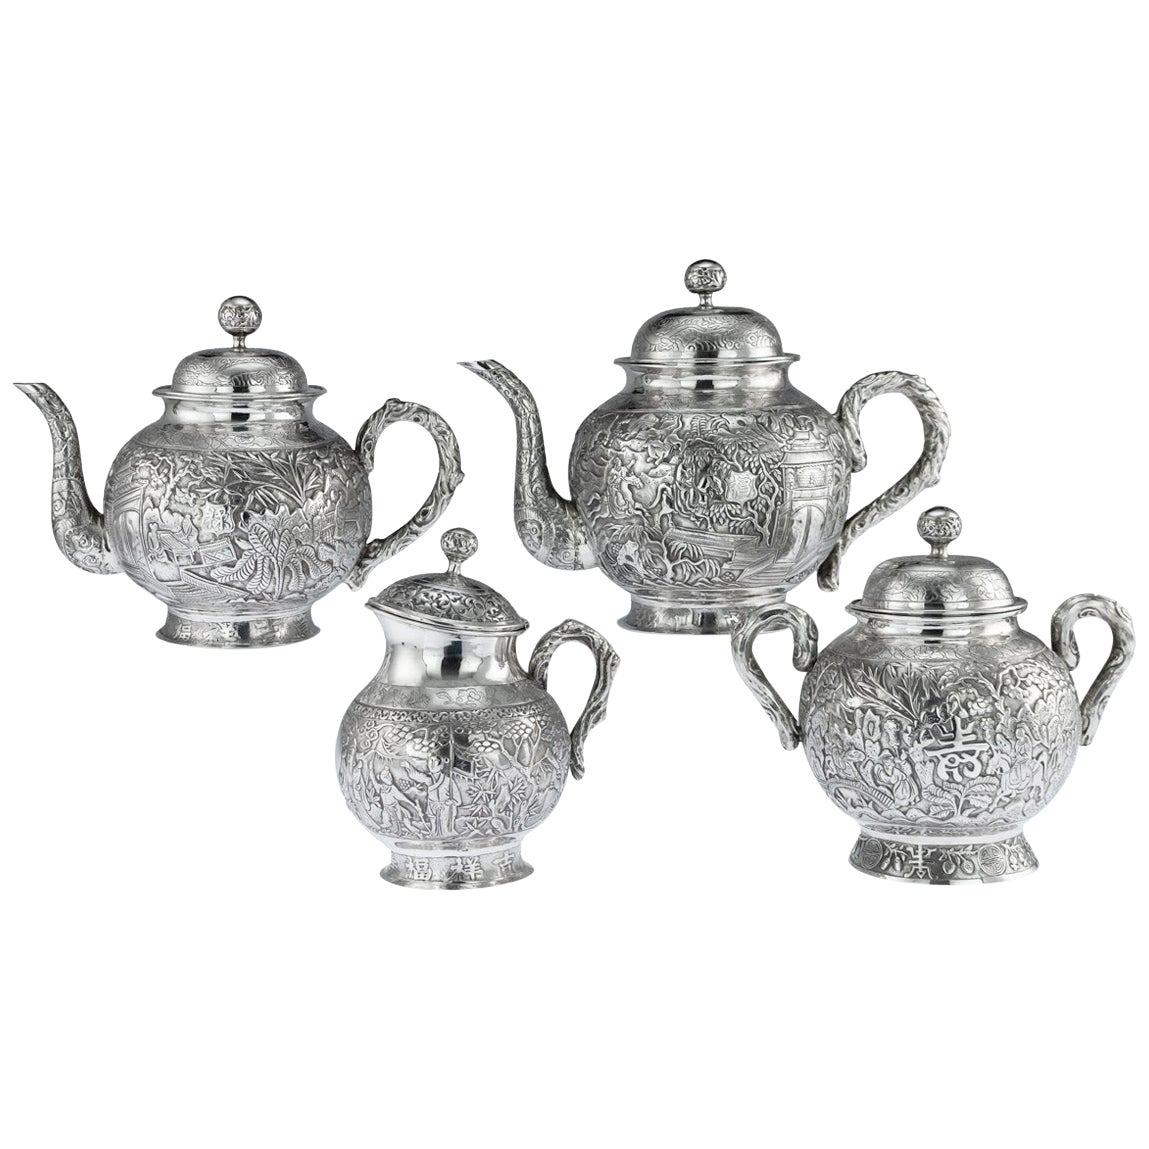 19th Century Chinese Exceptional Solid Silver Tea Service, Hong Kong, circa 1890